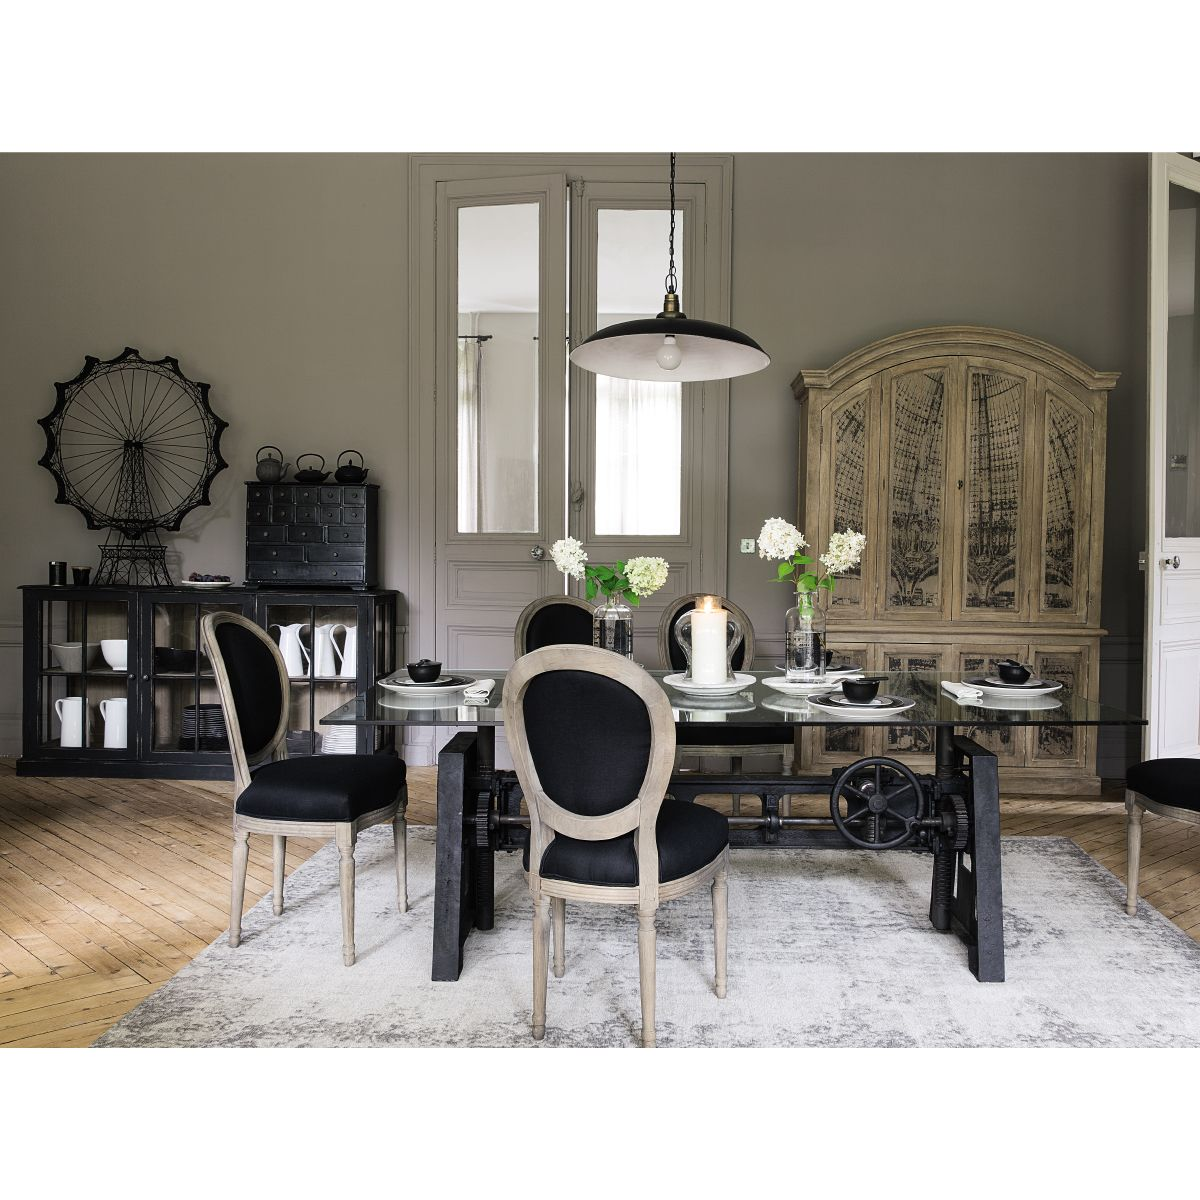 la plus grande maison du monde top russie la plus grande. Black Bedroom Furniture Sets. Home Design Ideas